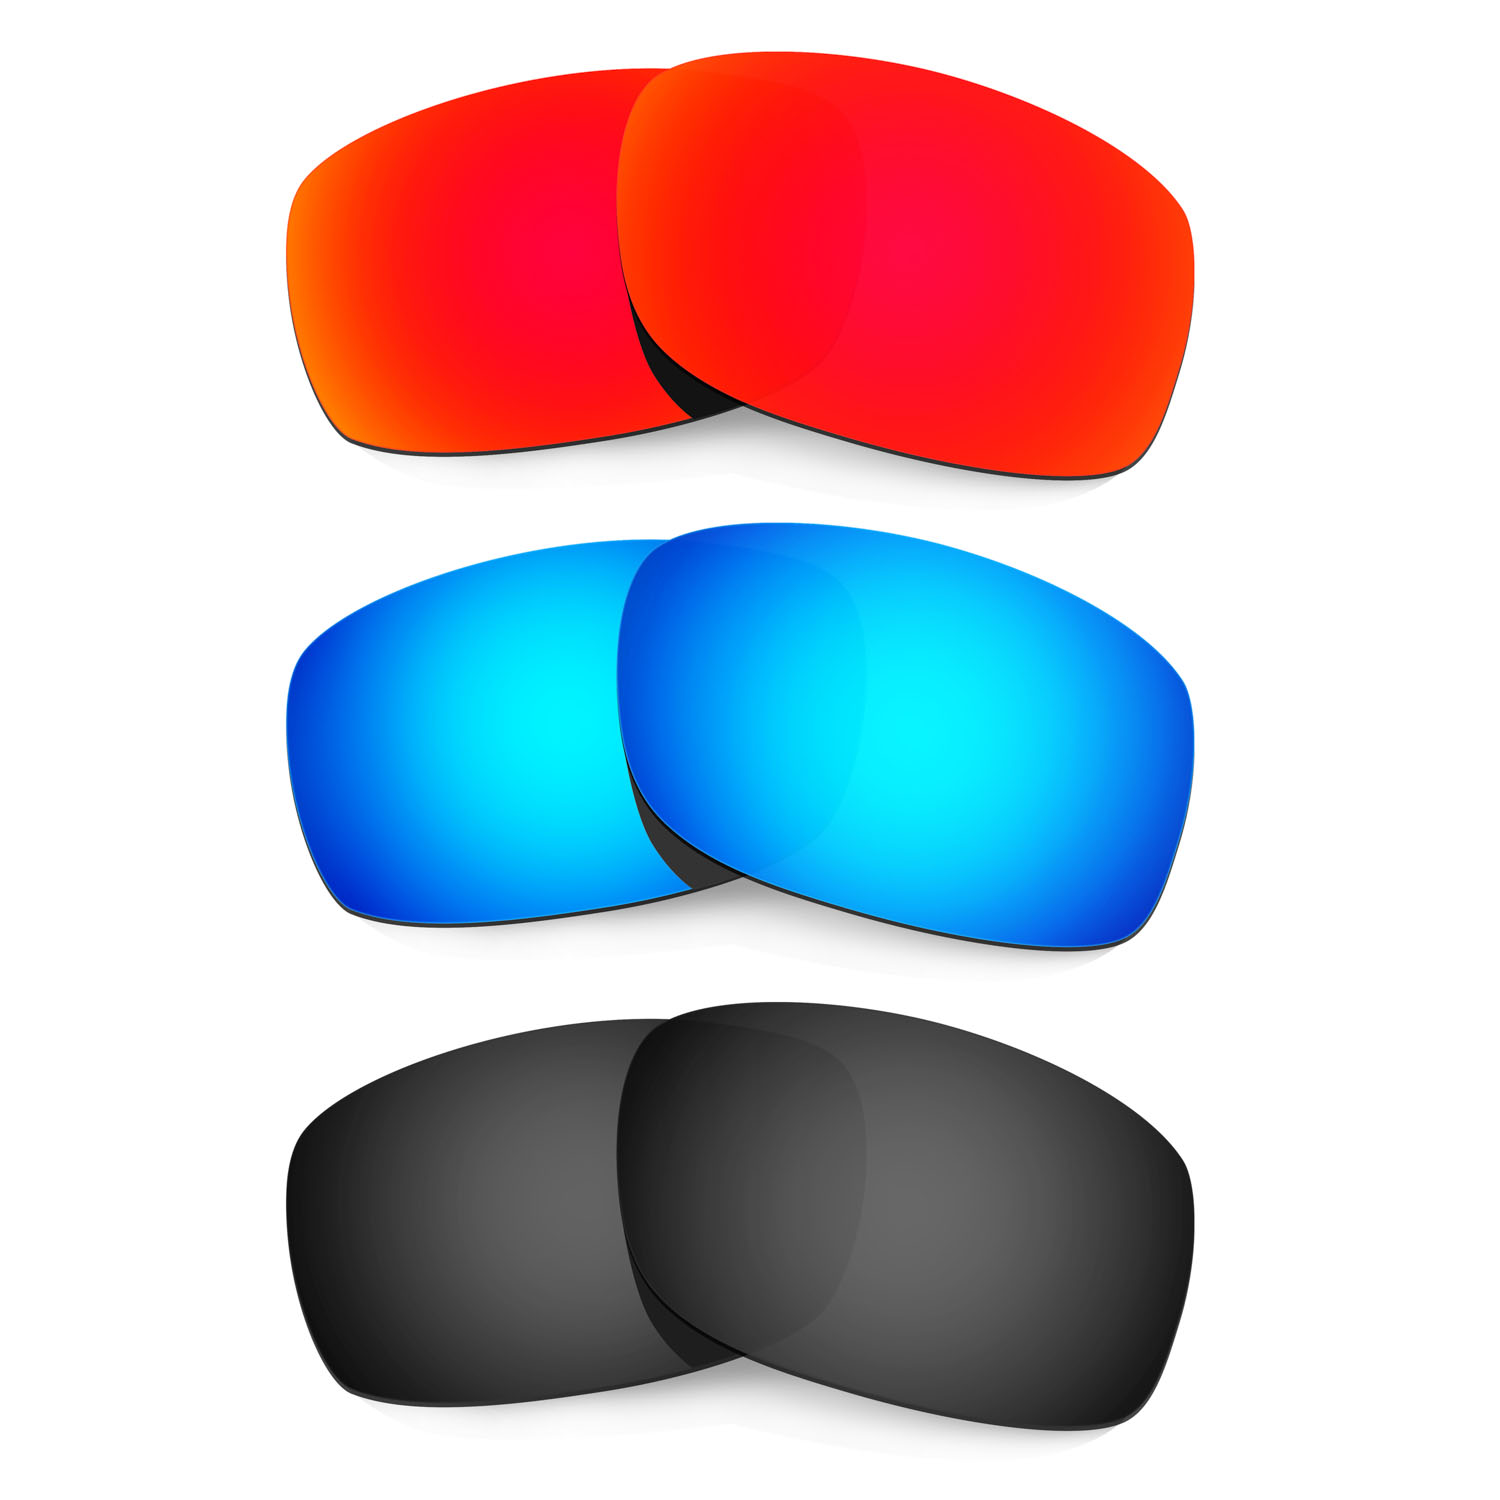 46389eea96 HKUCO Red+Blue+Black Polarized Replacement Lenses for Oakley Fives Squared  Sunglasses